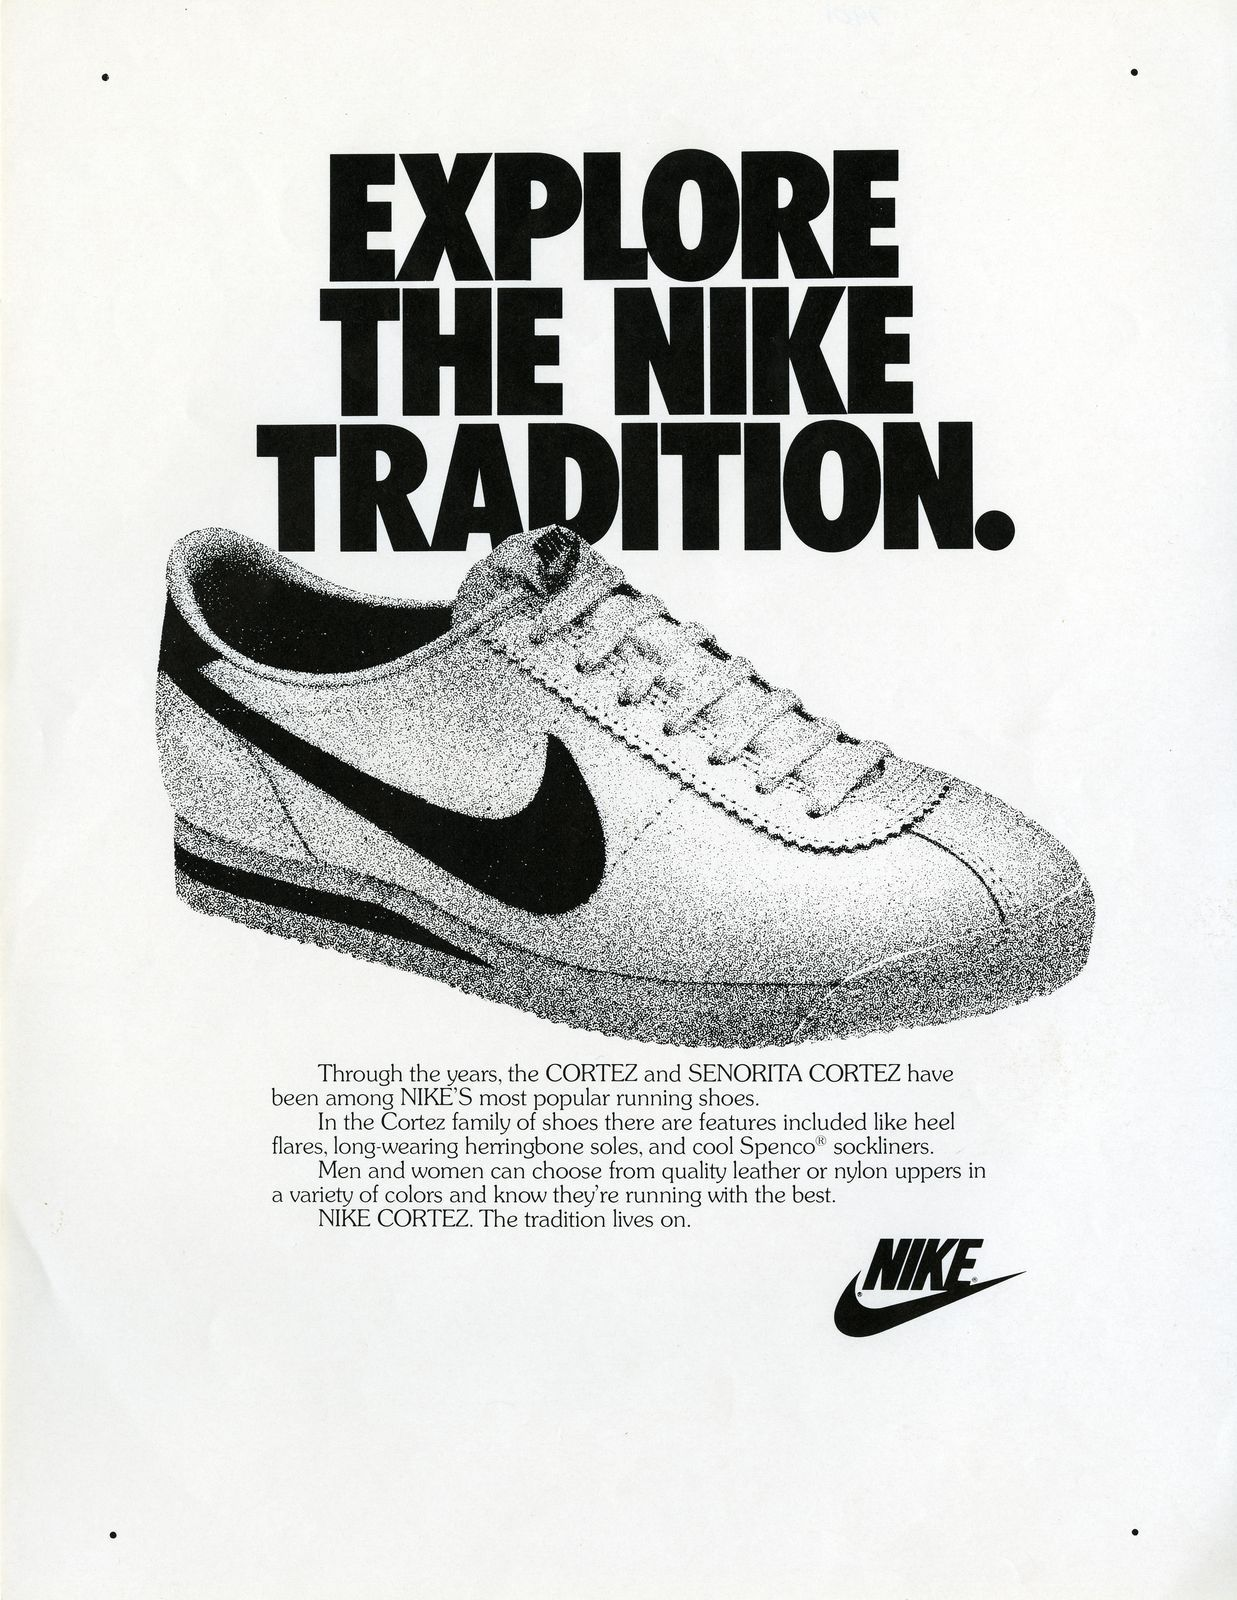 check out 1a525 a8e77 The Nike Cortez is as much a part of Los Angeles history as the film  industry, the Lakers   the Watts riots. Read more on the evolution of this  famous shoe